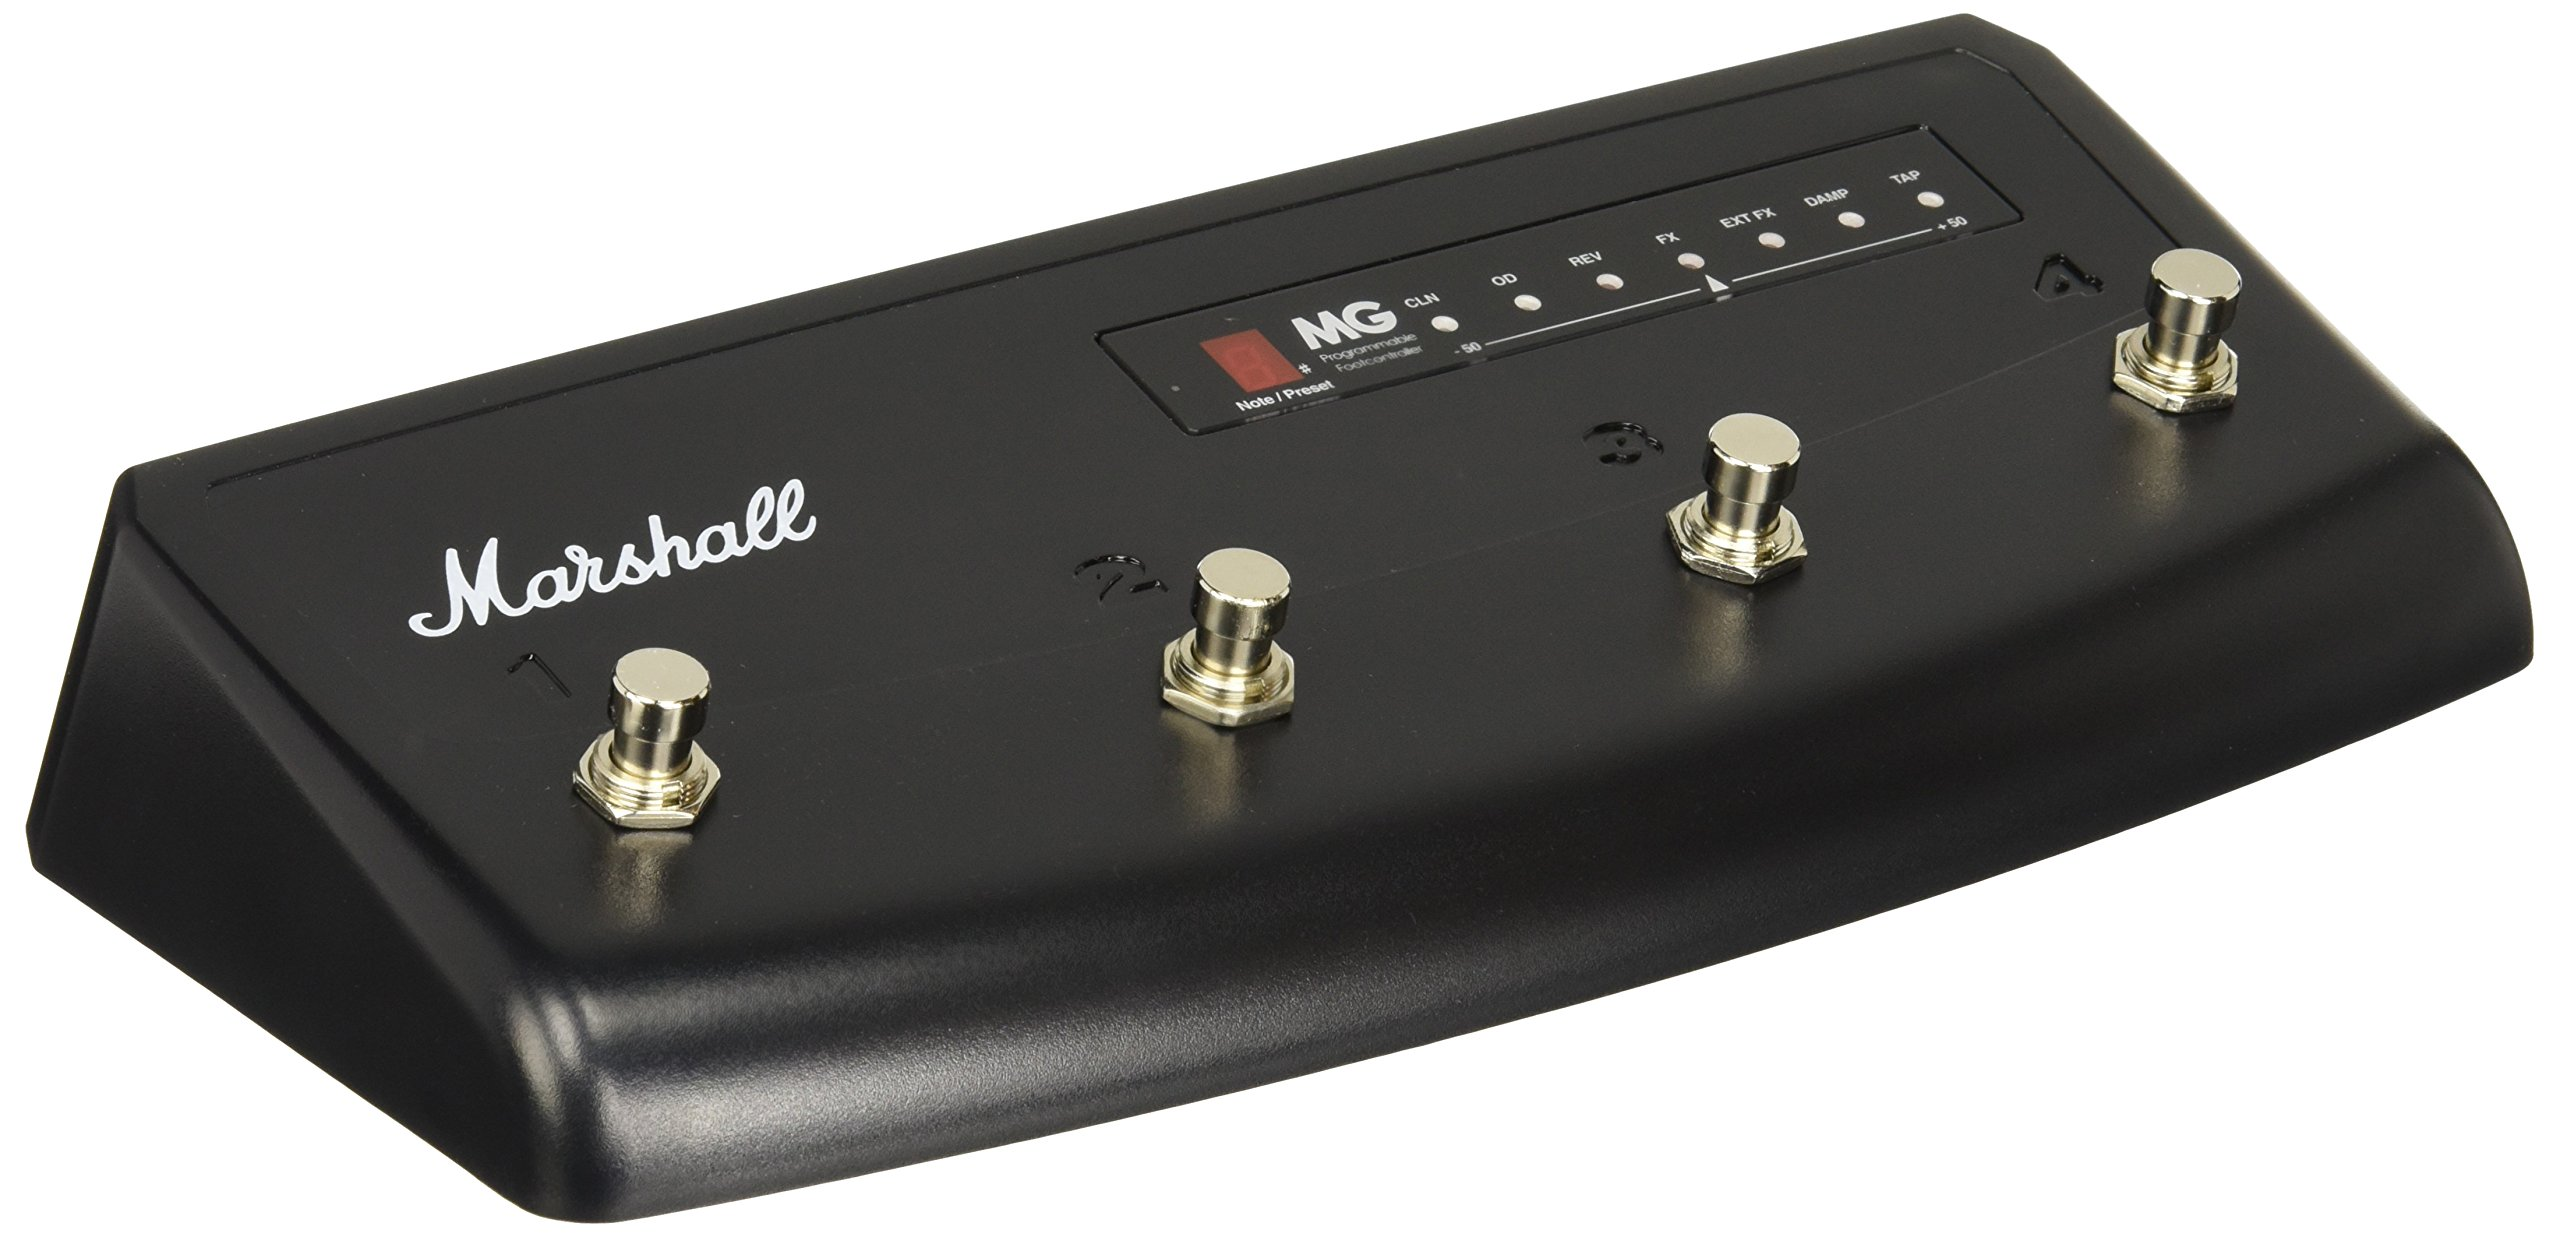 Marshall PEDL-90008 MG15FX/MG30FX/MG50FX/MG101FX Footswitch by Marshall